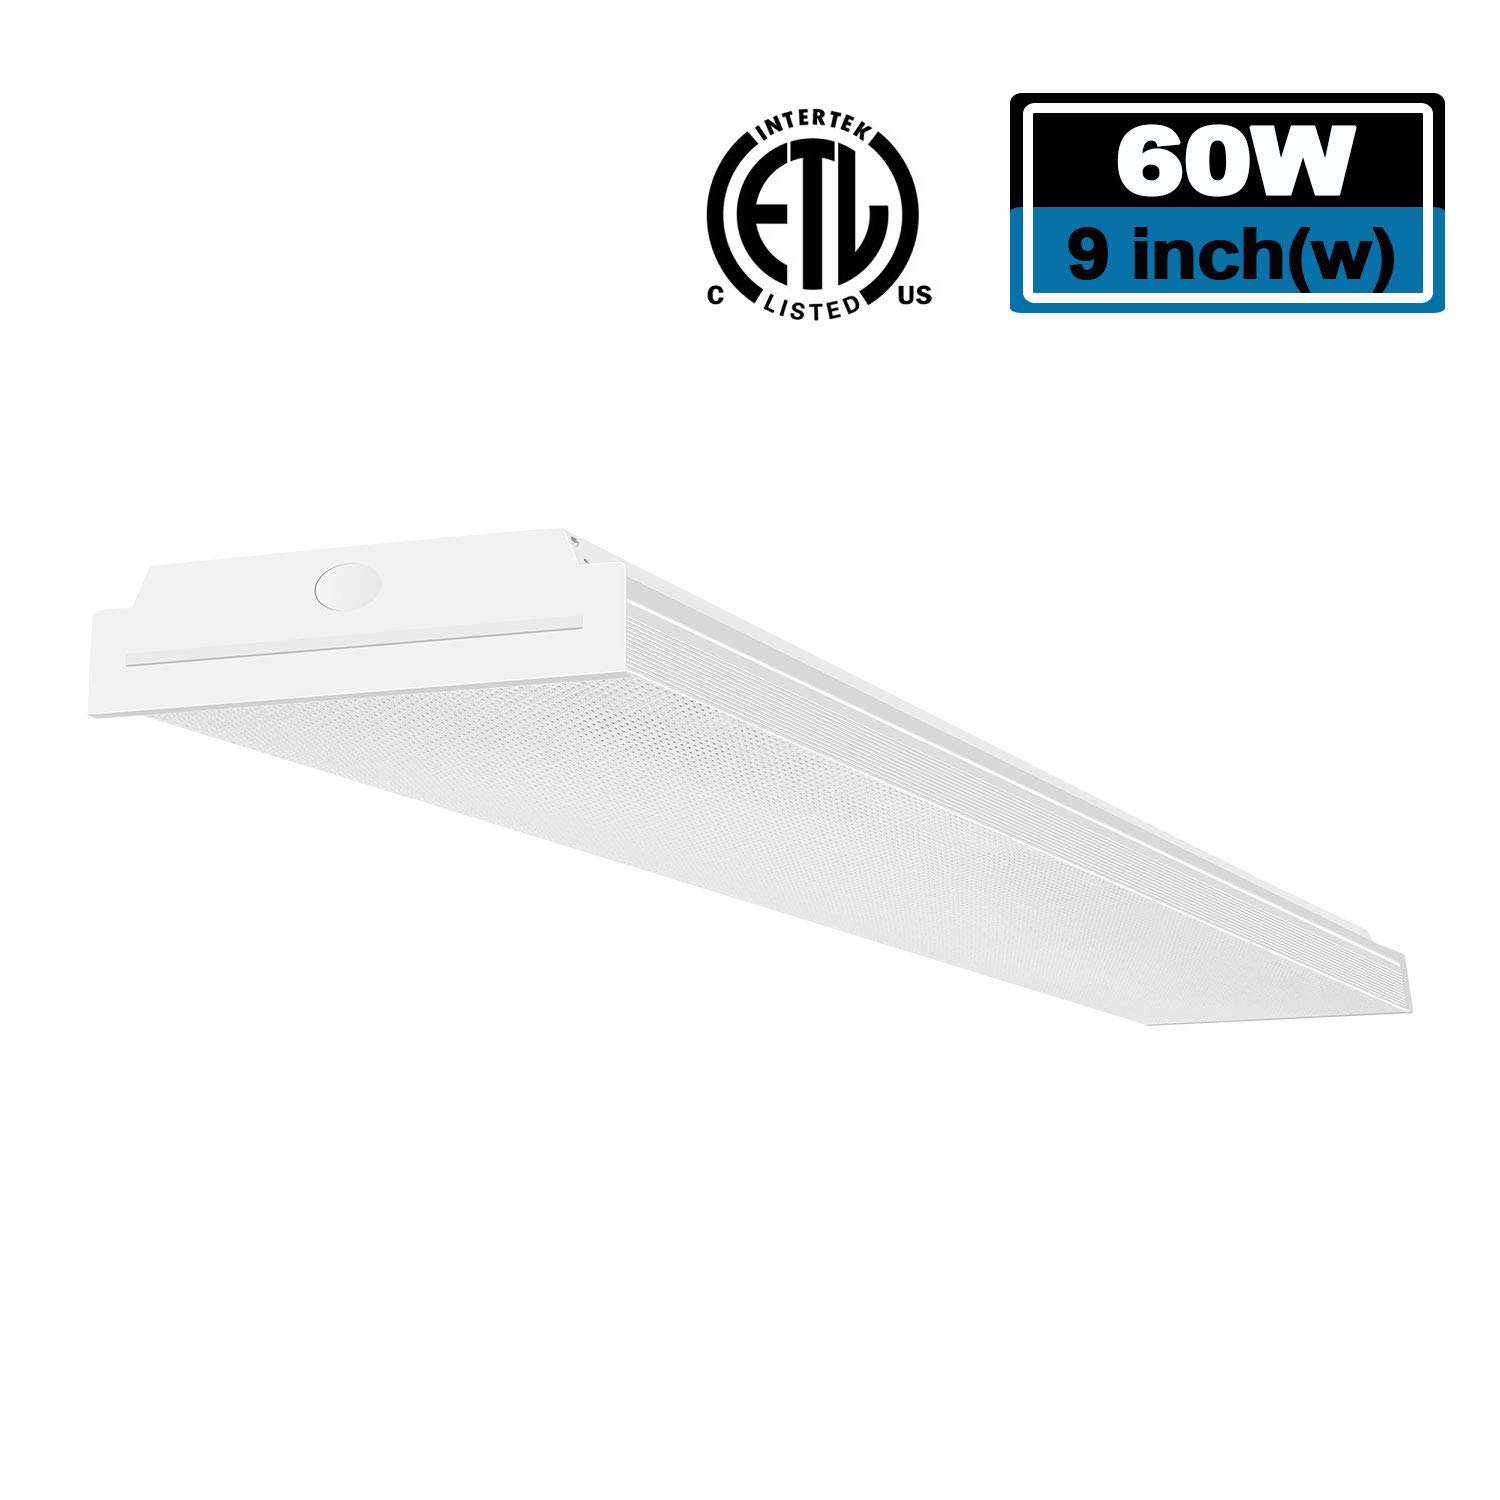 FaithSail 4FT LED Wraparound Light 60W LED Office Lights, 7200lm 4000K Neutral White, 4 Foot Flush Mount LED Wrap Shop Puff Ceiling Lighting Fixture for Garage Workshop, Fluorescent Light Replacement